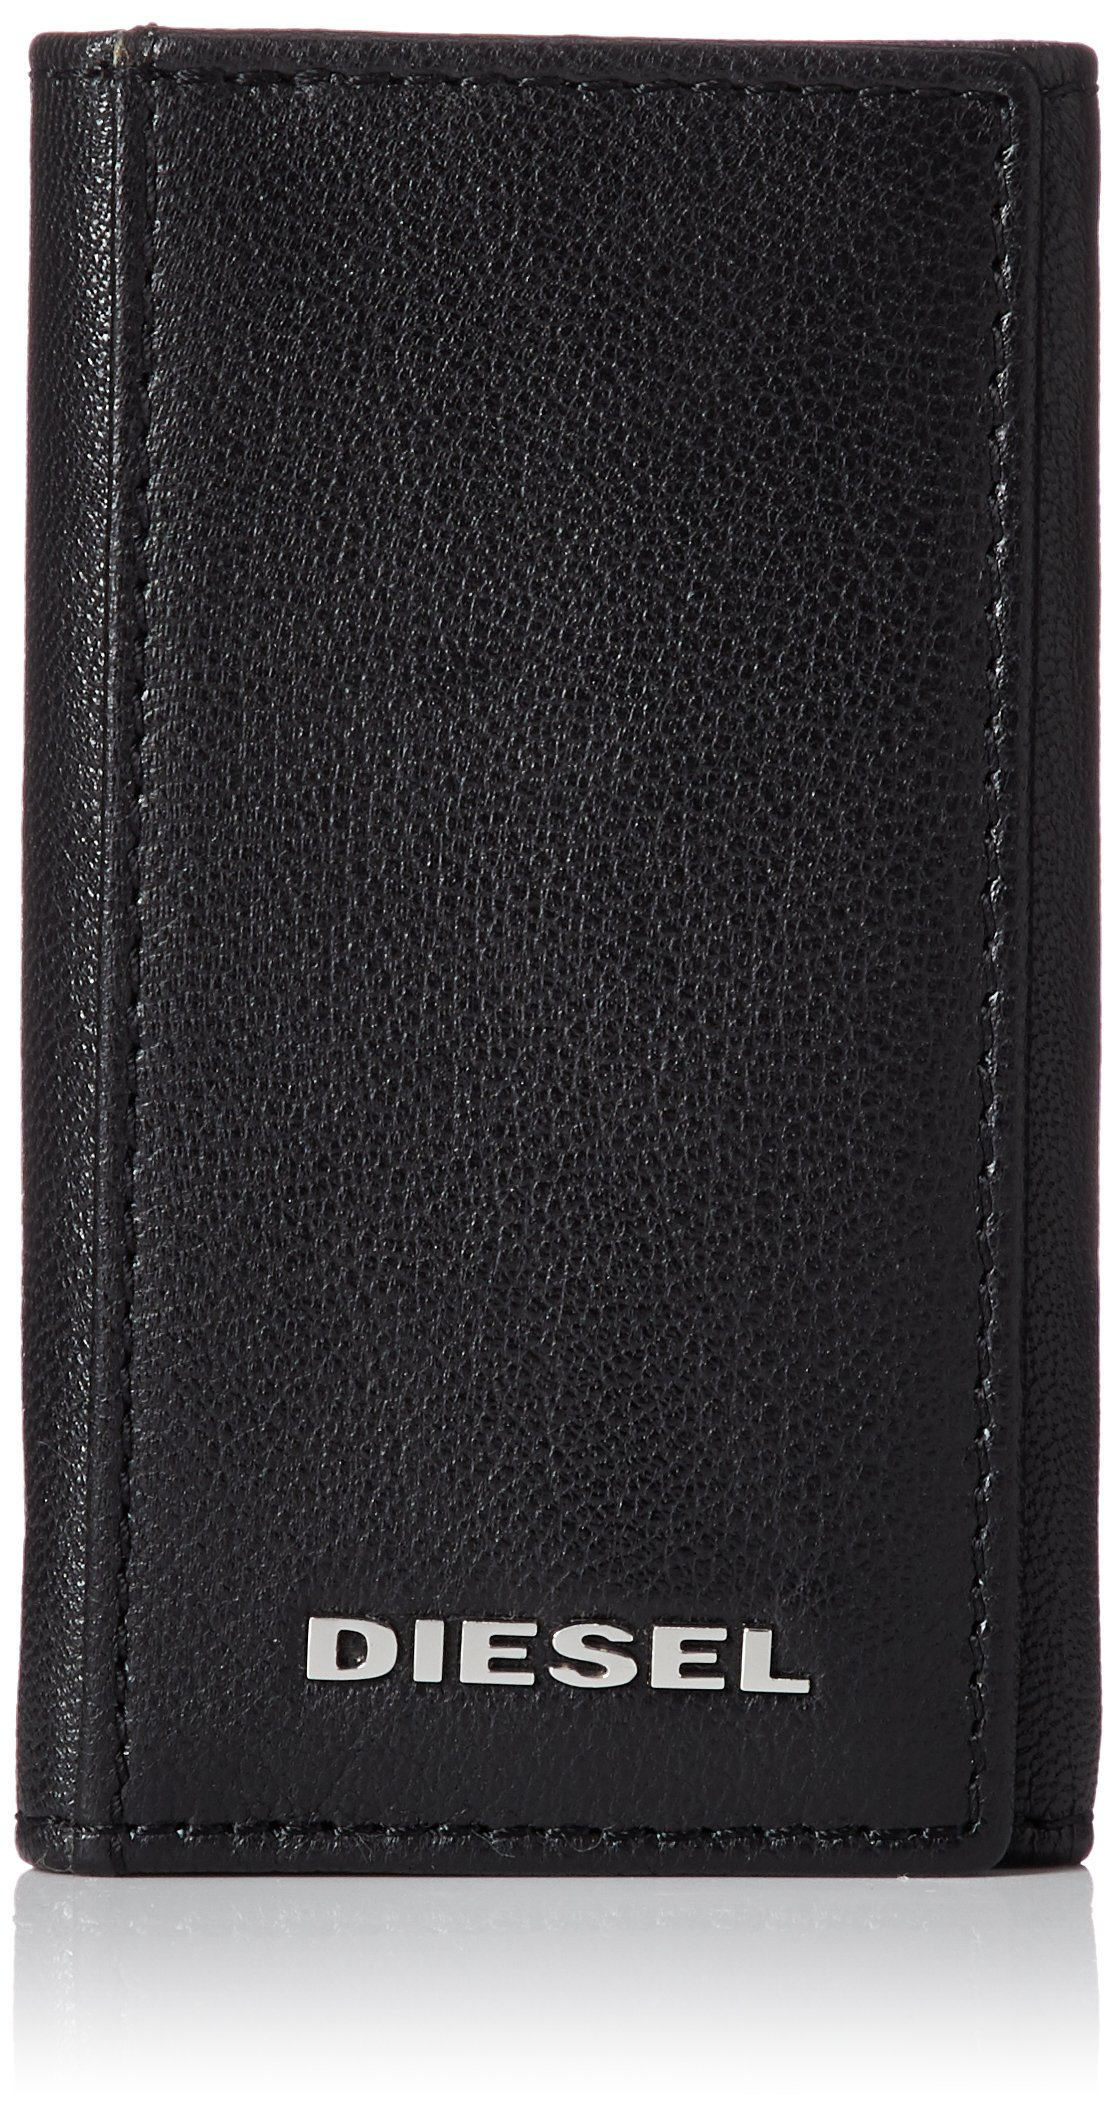 Diesel Men's Fresh Starter KEYCASE O-Key Holder, Black/PUREED Pumpkin, One Size